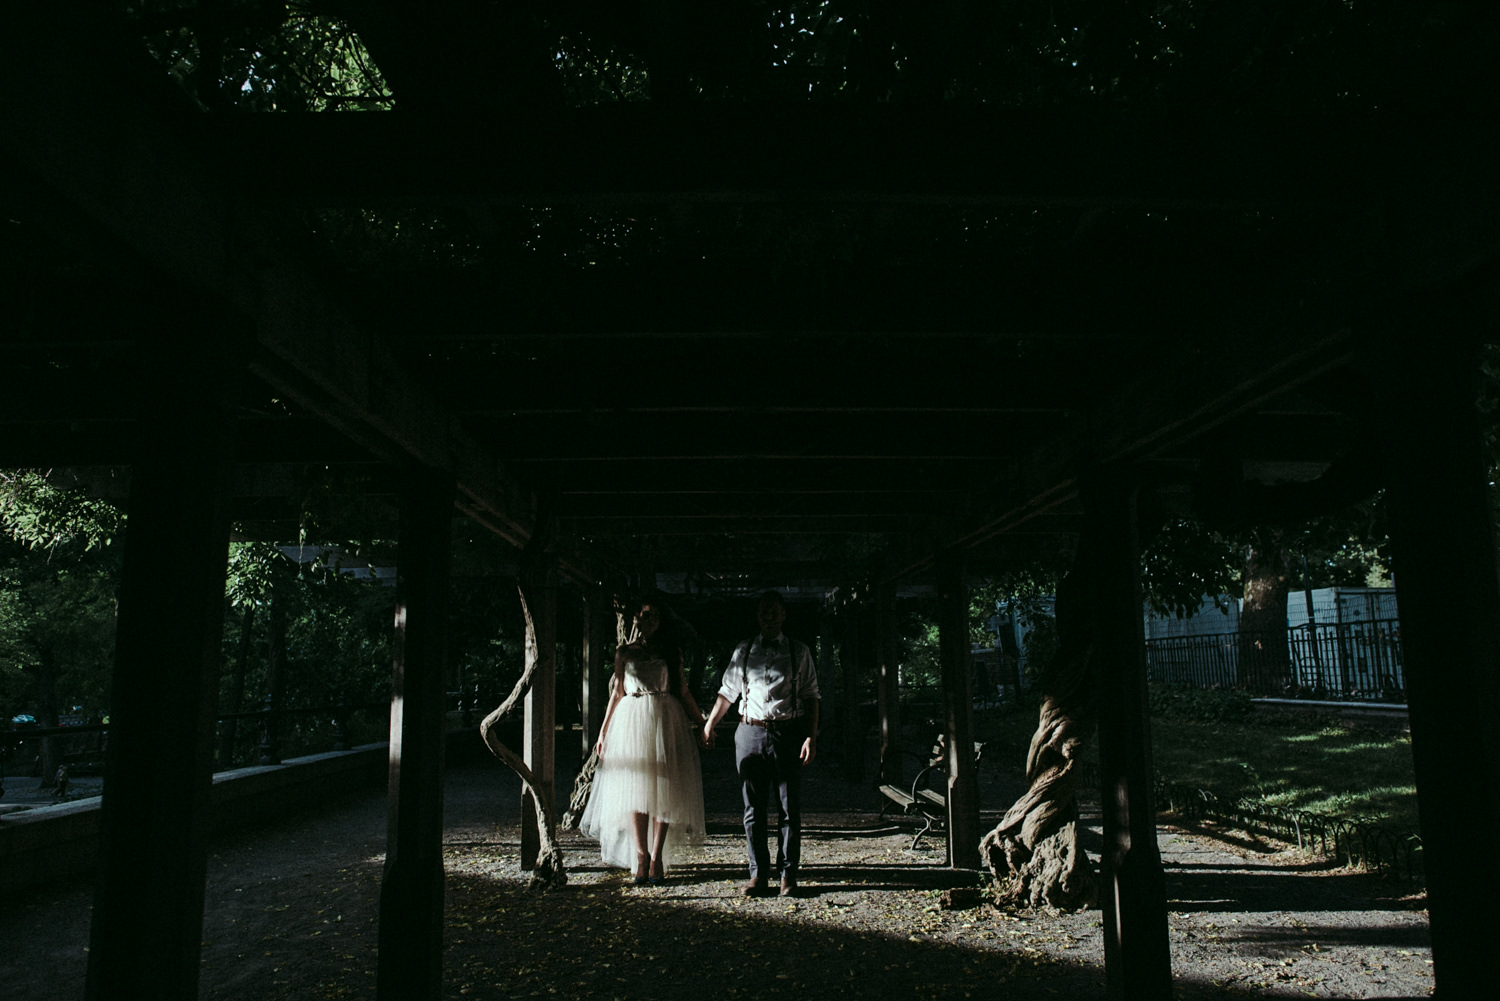 new-york-elopement-engagement-pictures-giancarlo-photography-46.jpg